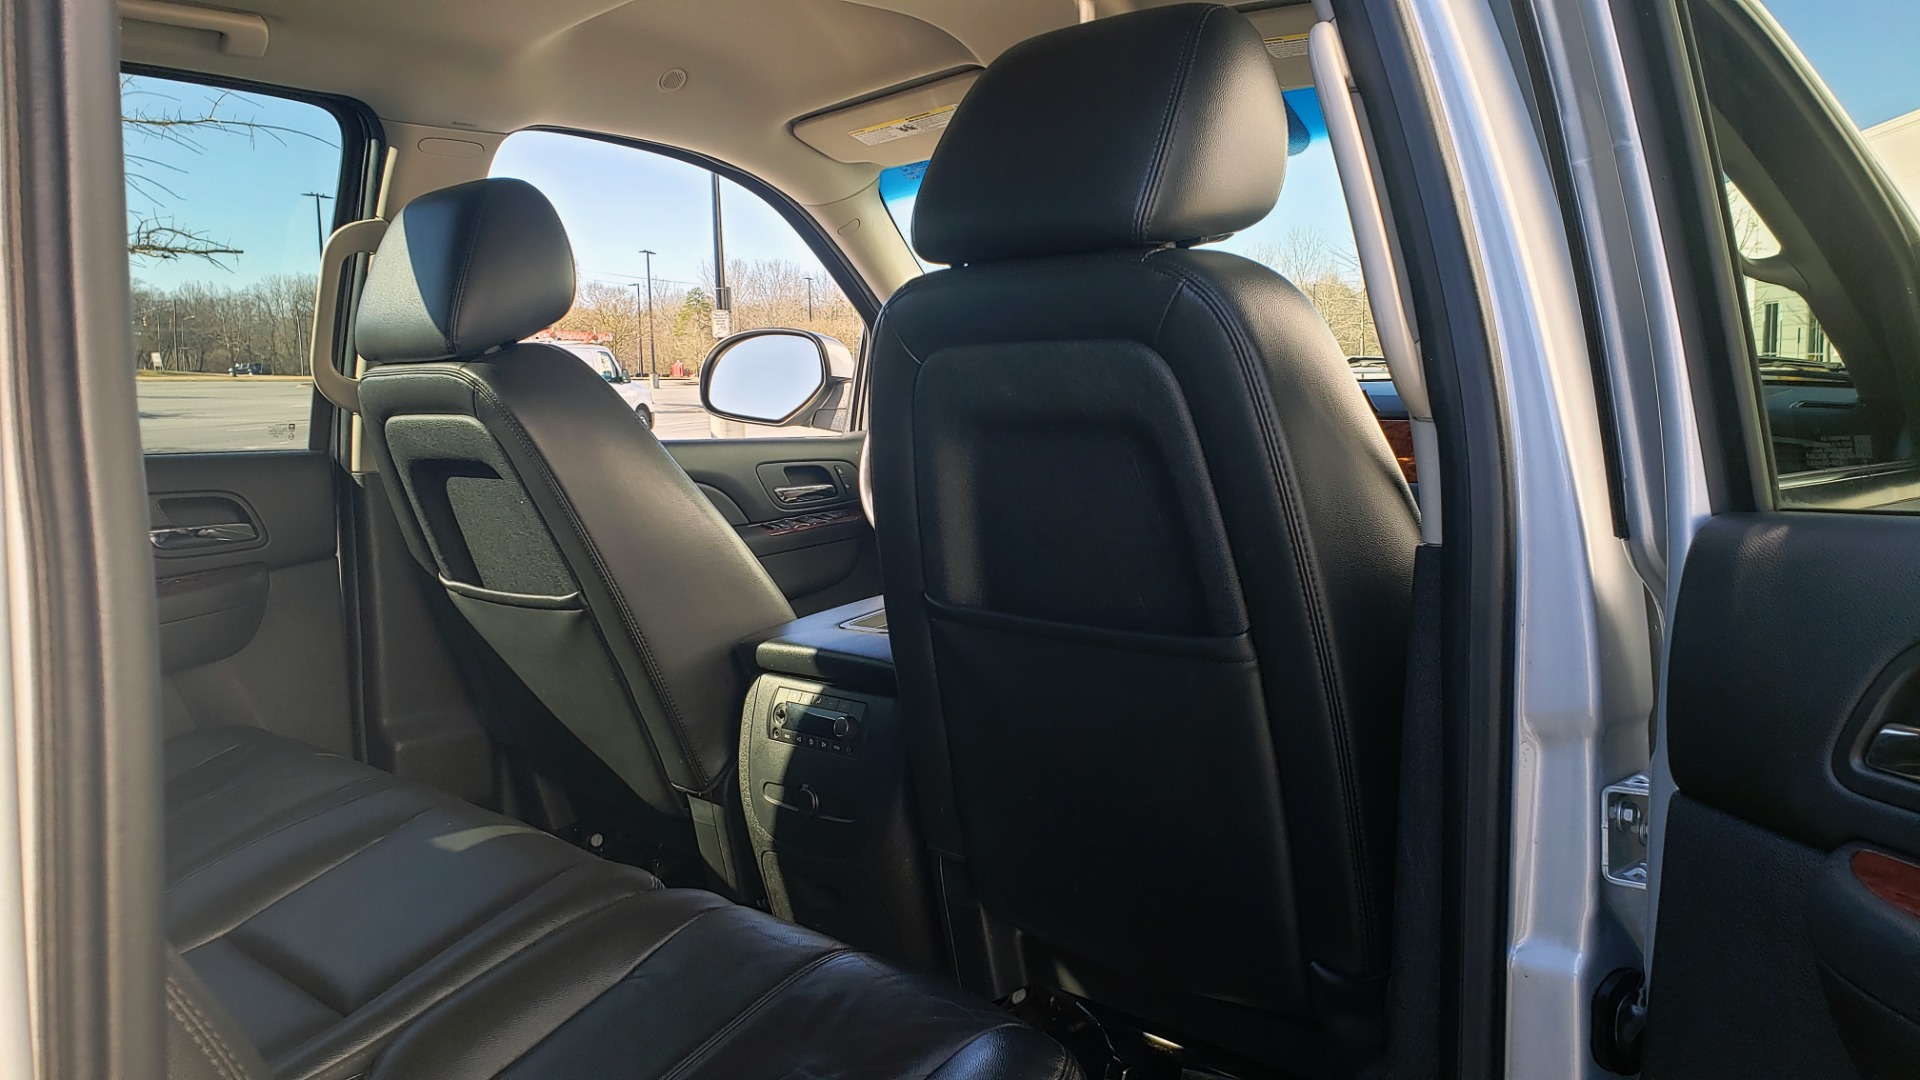 Used 2013 Chevrolet SUBURBAN LT / 2WD / 5.3L V8 / 6-SPD AUTO / LEATHER 3-ROW SEATS for sale Sold at Formula Imports in Charlotte NC 28227 69